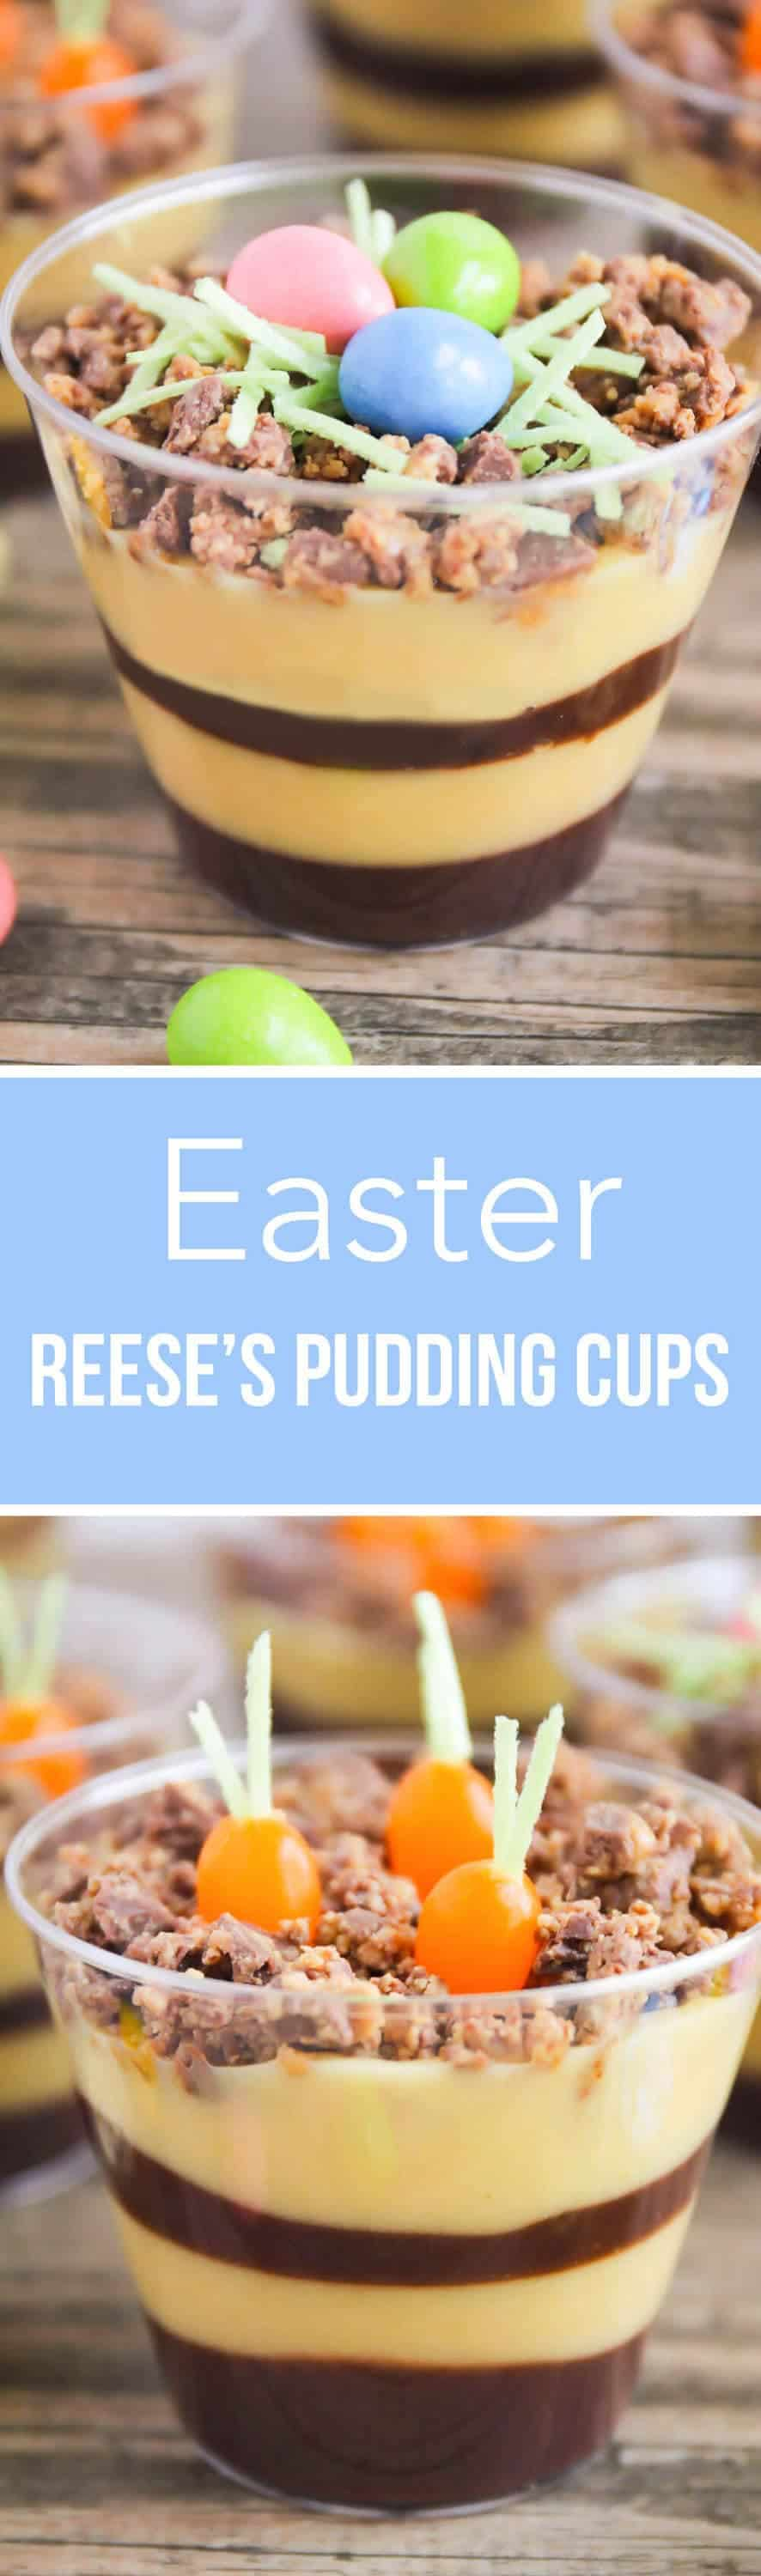 Planted Carrot and Egg Nests Easter Pudding Cups ...such an easy and delicious recipe for Spring. The kids will love helping with this fantastic Easter dessert!